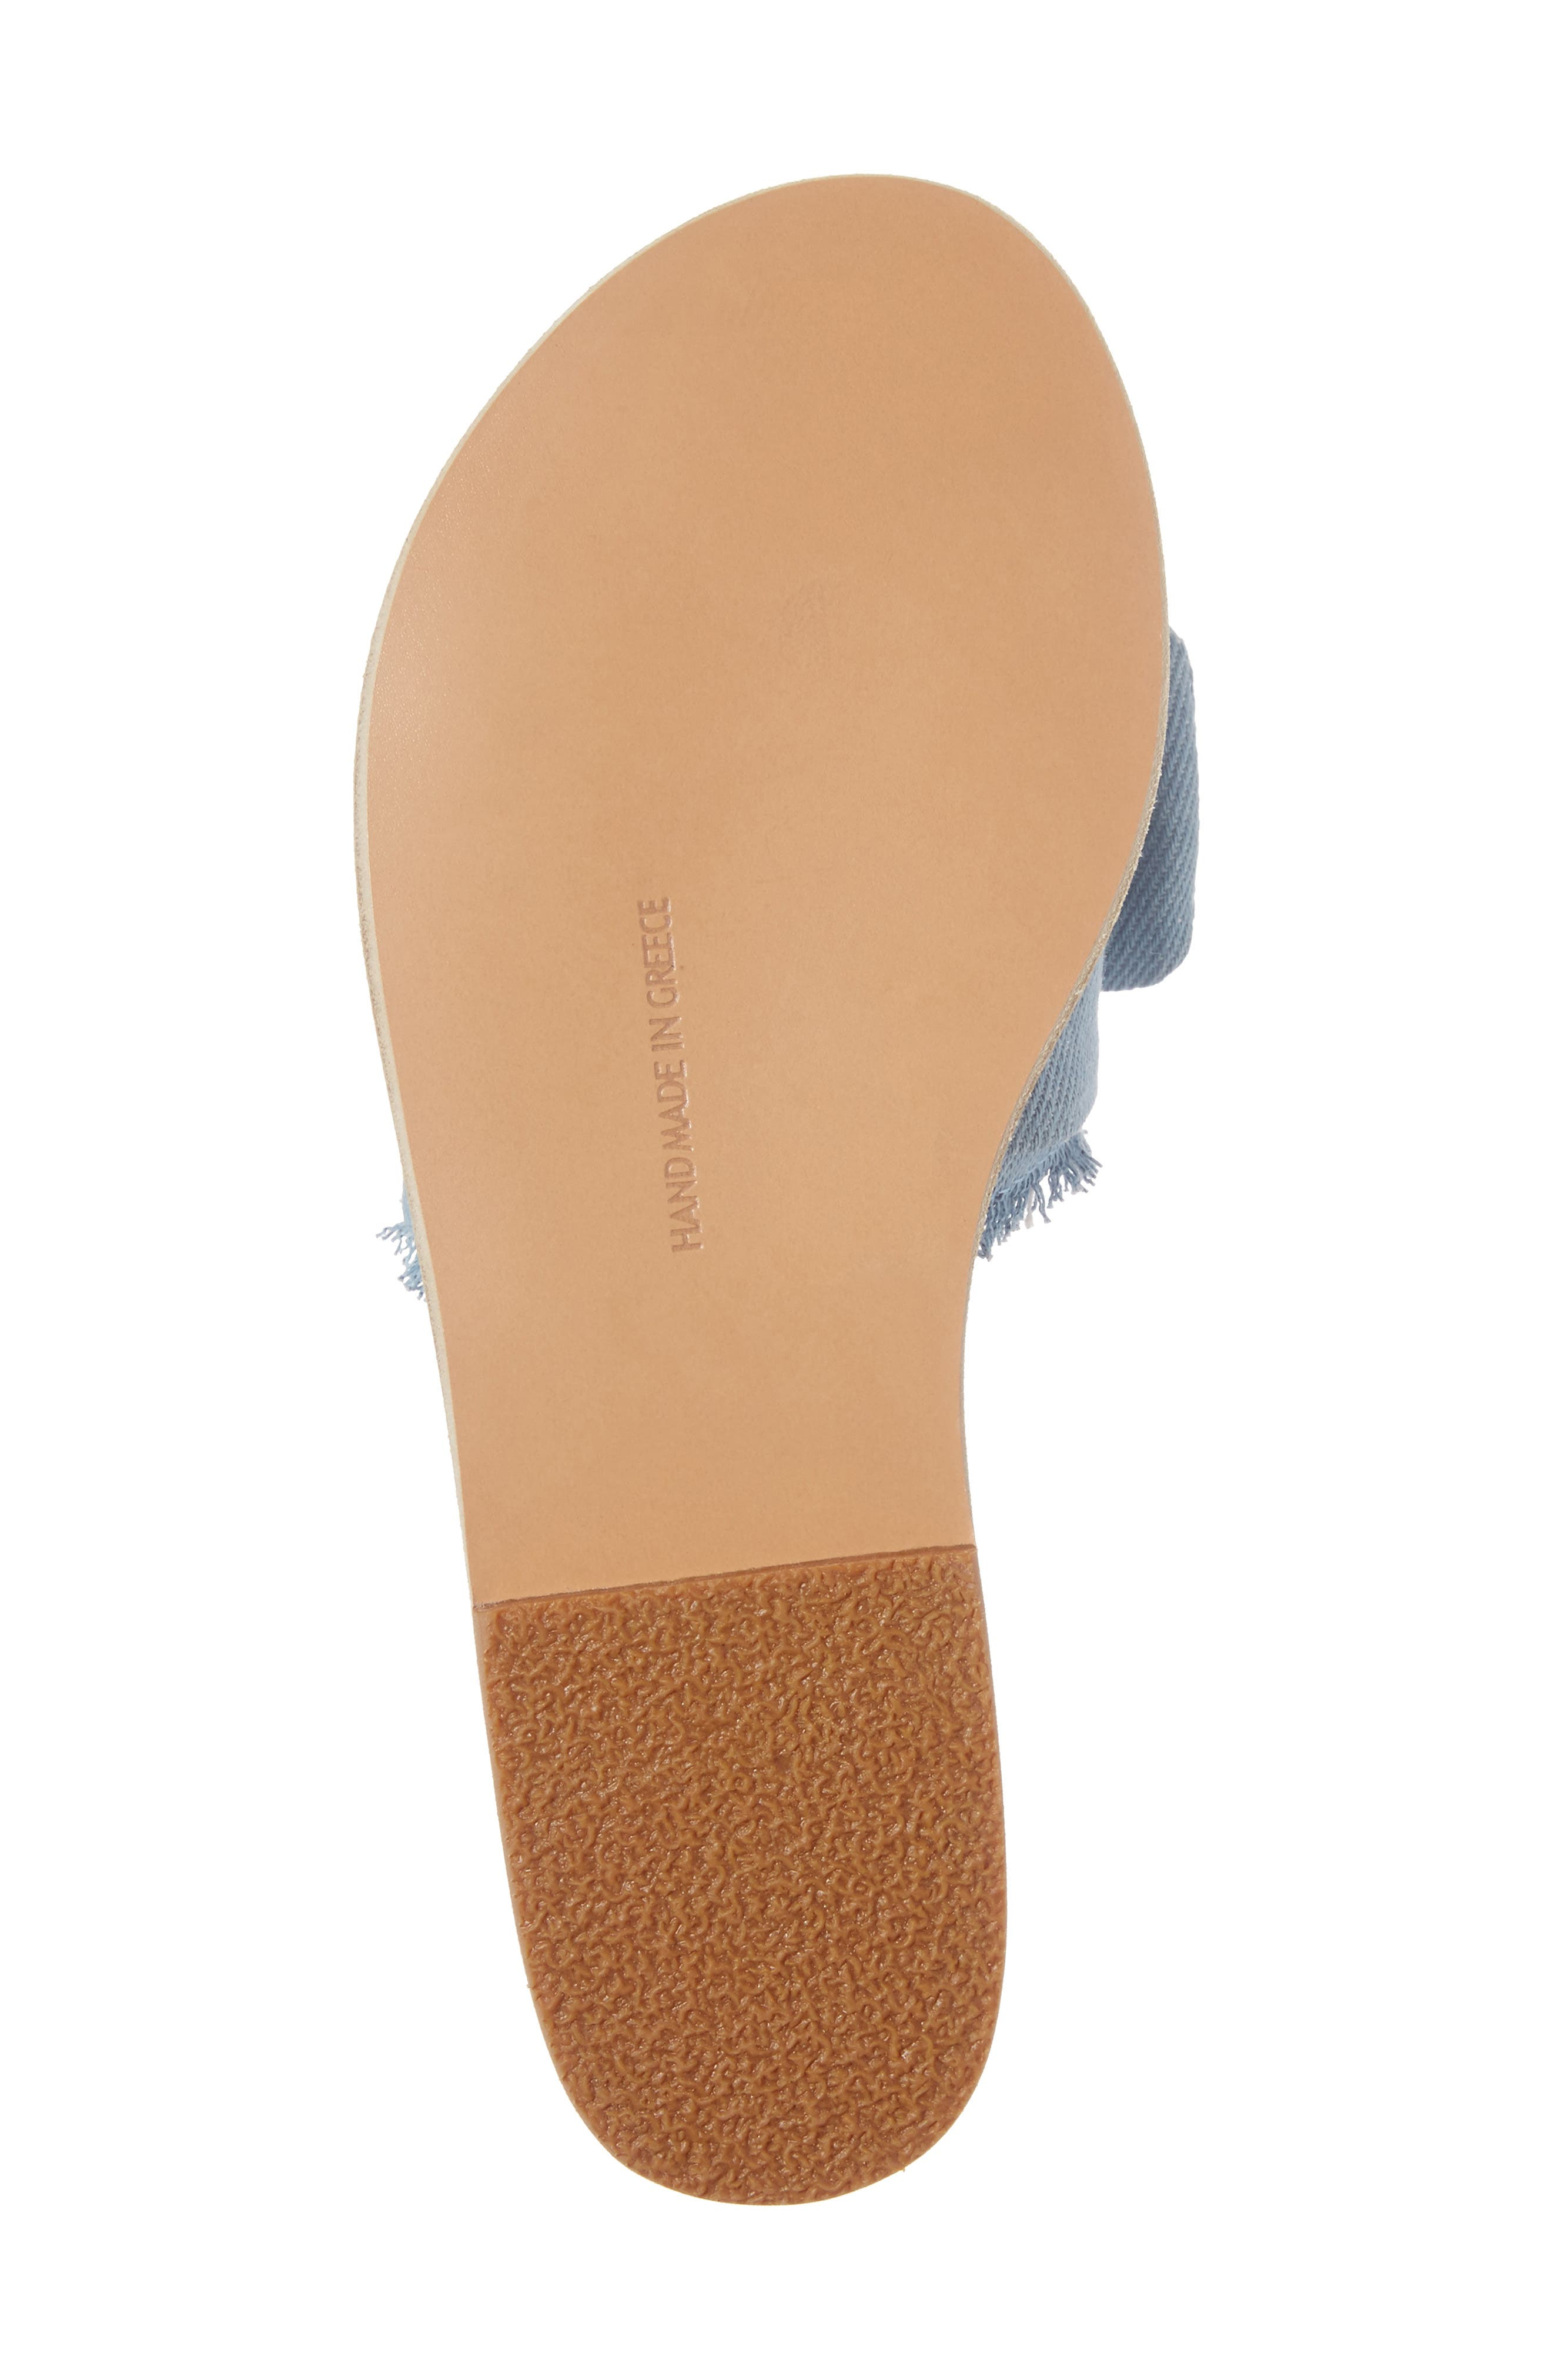 Taygete Bow Slide Sandal,                             Alternate thumbnail 22, color,